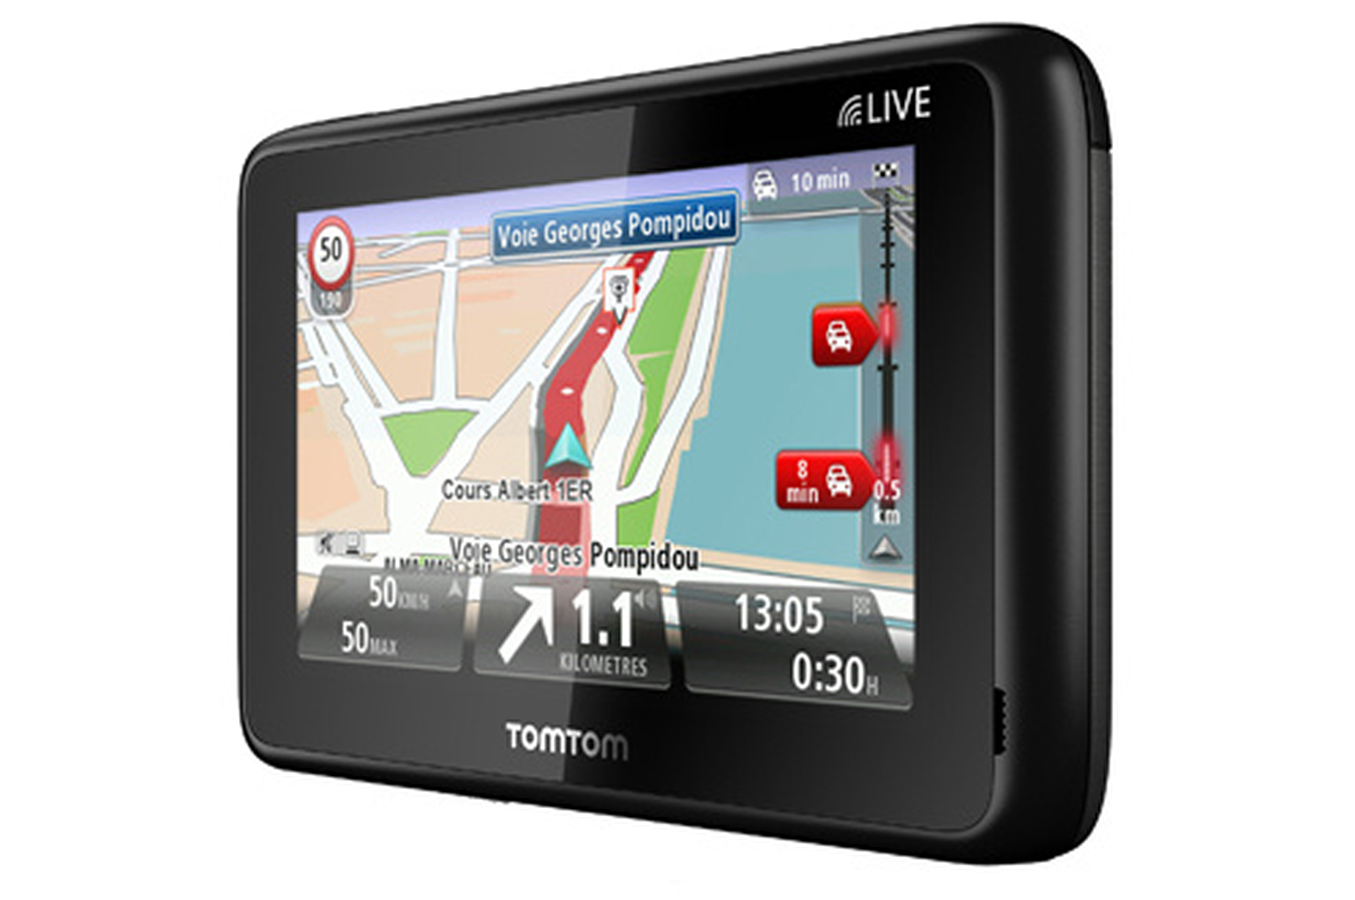 gps tomtom go live 1005 europe golive1005 3347613 darty. Black Bedroom Furniture Sets. Home Design Ideas